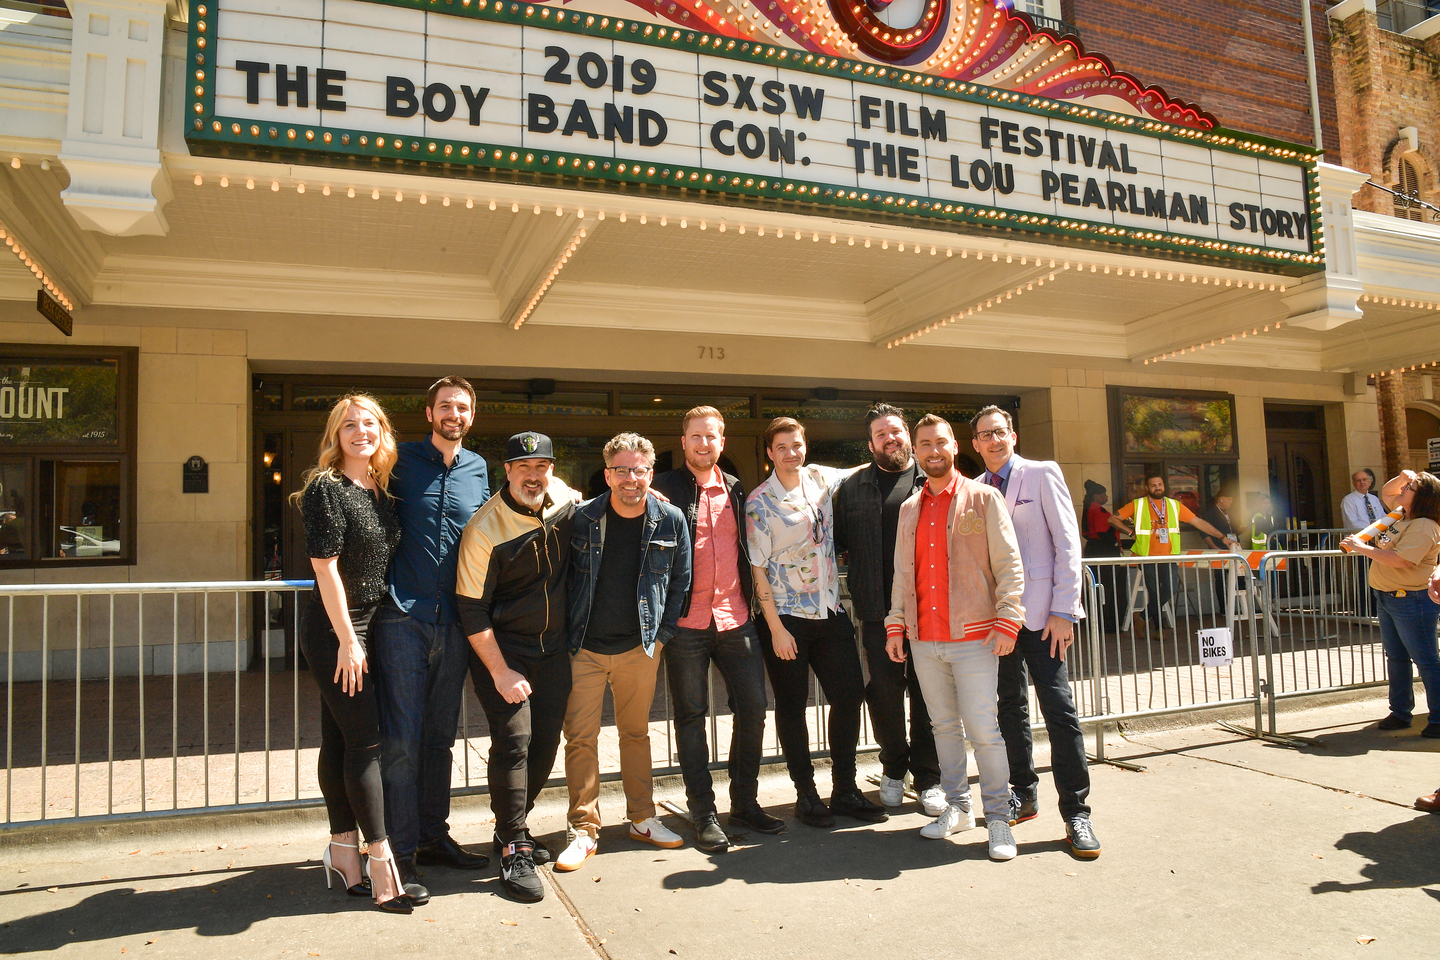 Callie Foster, Shane Patterson, Joey Fatone, Dave Holmes, Aaron Kunkel, Matthew Charles Ducey, Henry Darrow McComas, Lance Bass, and Nicholas Caprio attend the The Boy Band Con: The Lou Pearlman Story premiere at the Paramount Theatre.